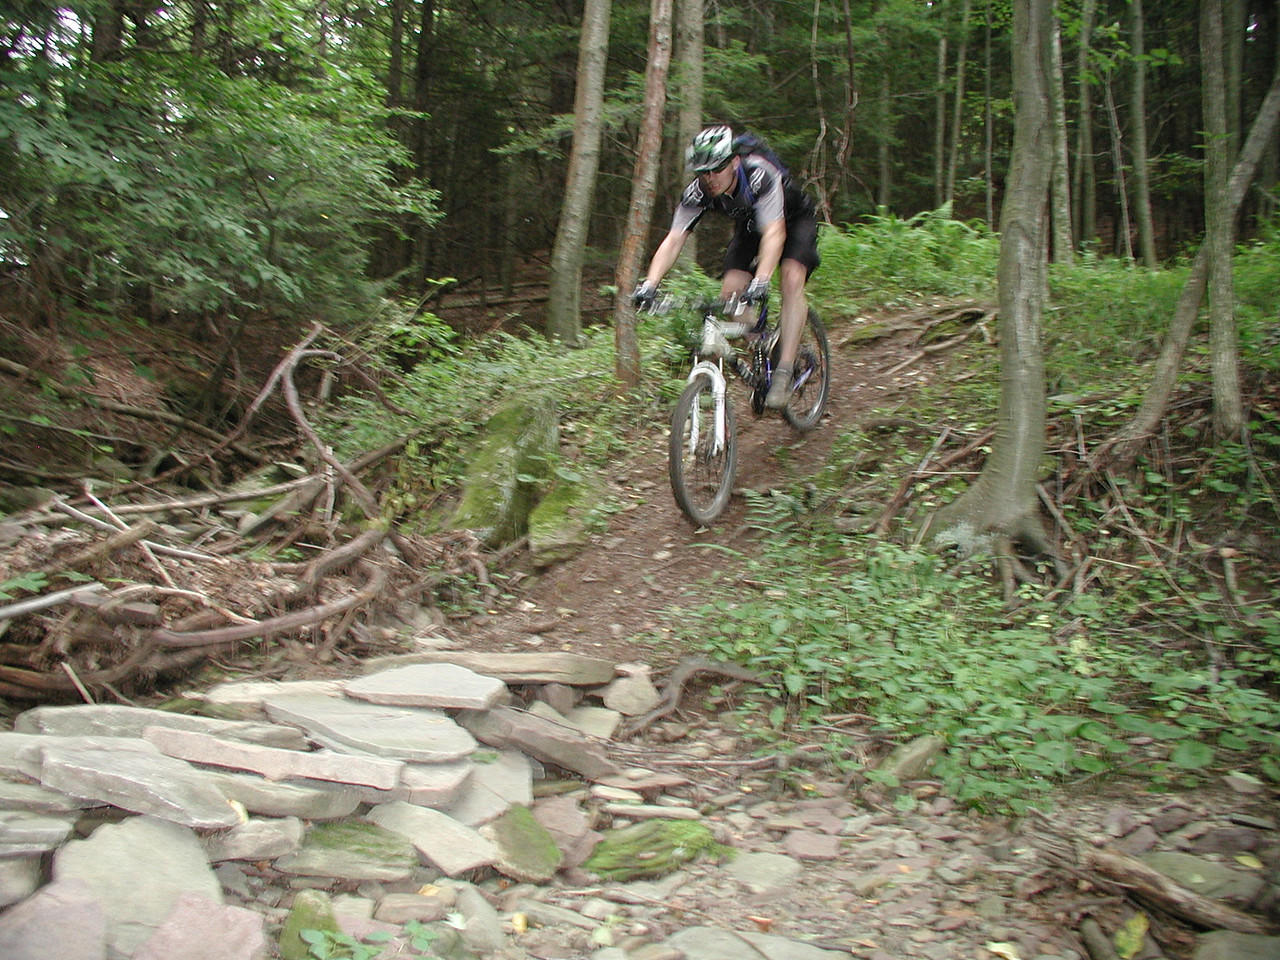 Michael makes all the hard stuff look easy, Poconos, August  04.